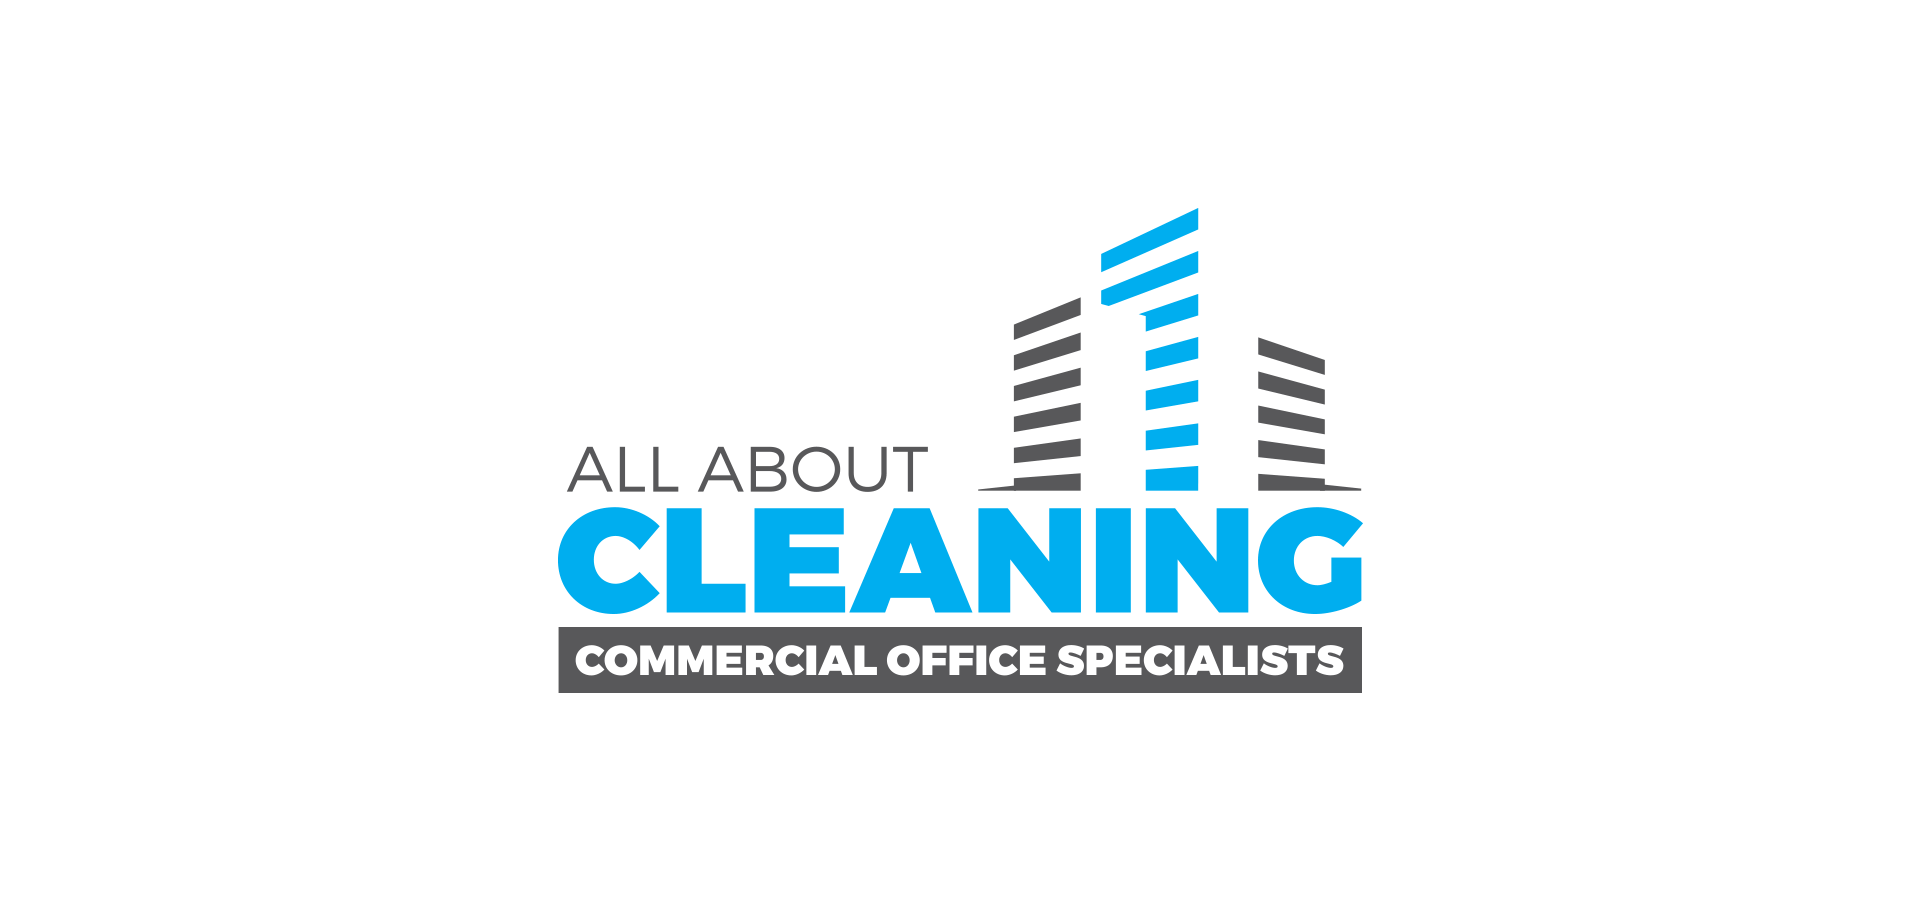 All About Cleaning client logo